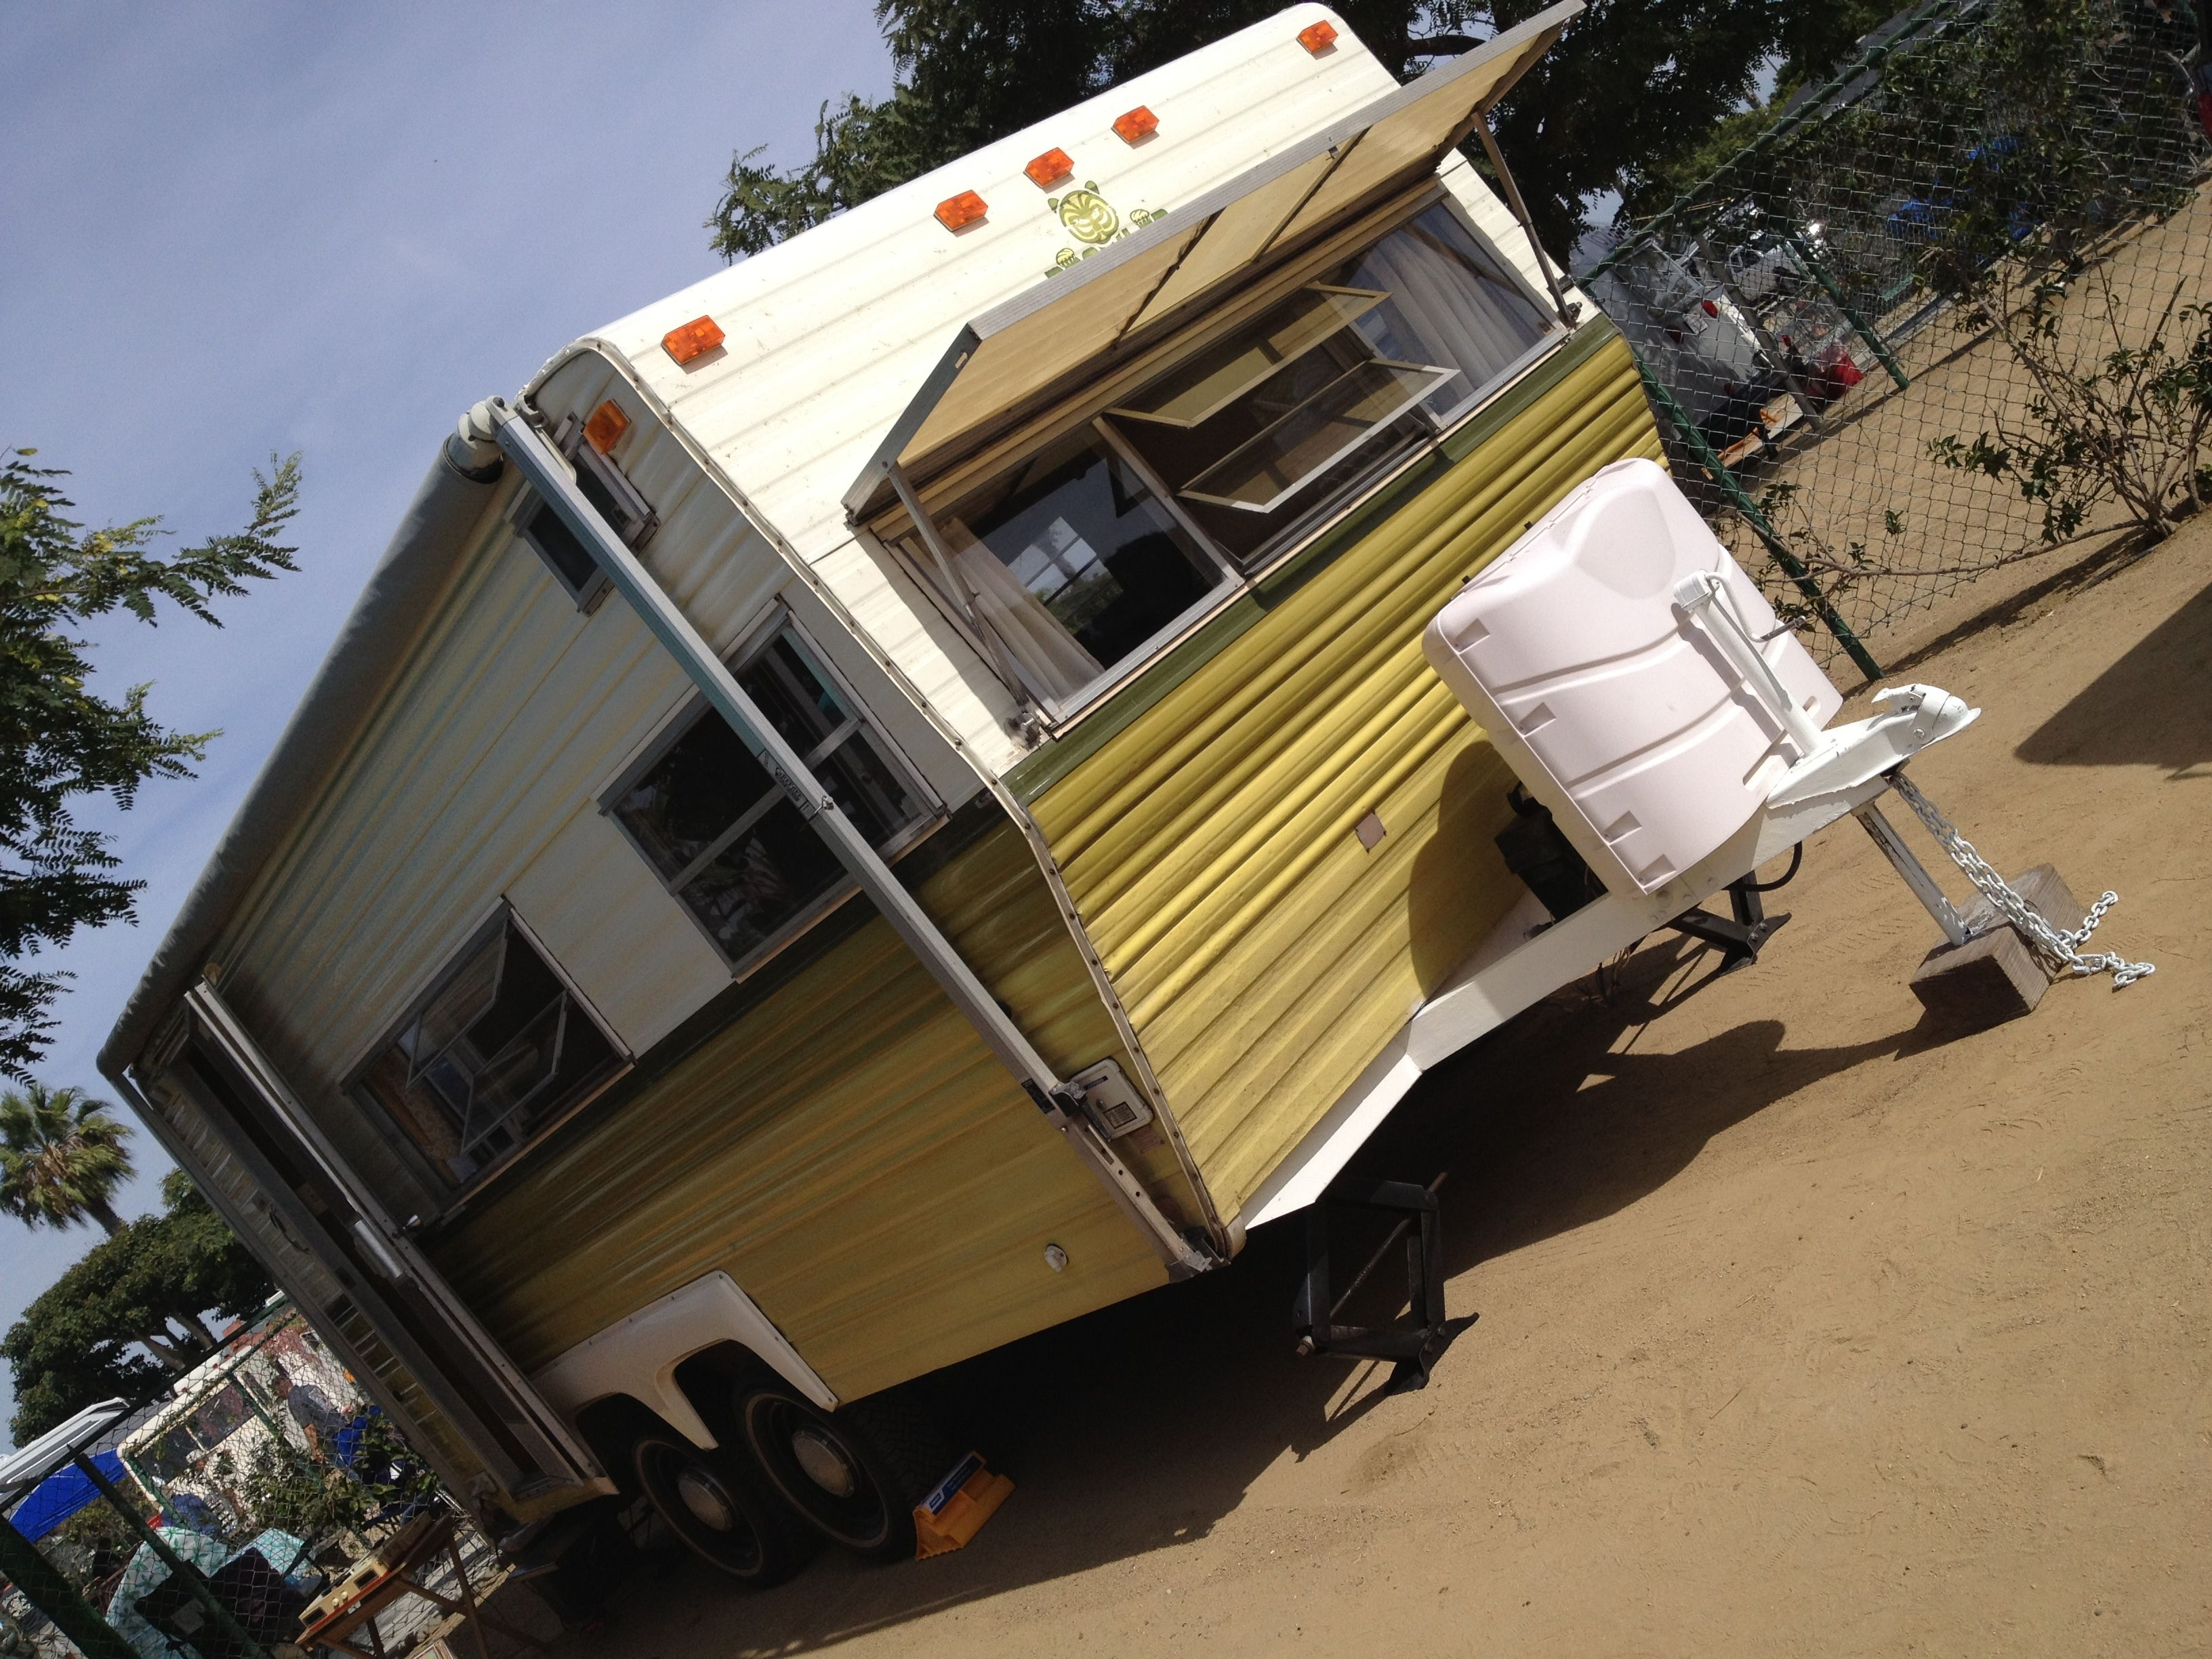 1976 Prowler 19 foot, door in rear & w/ awning. Camper Renovation,